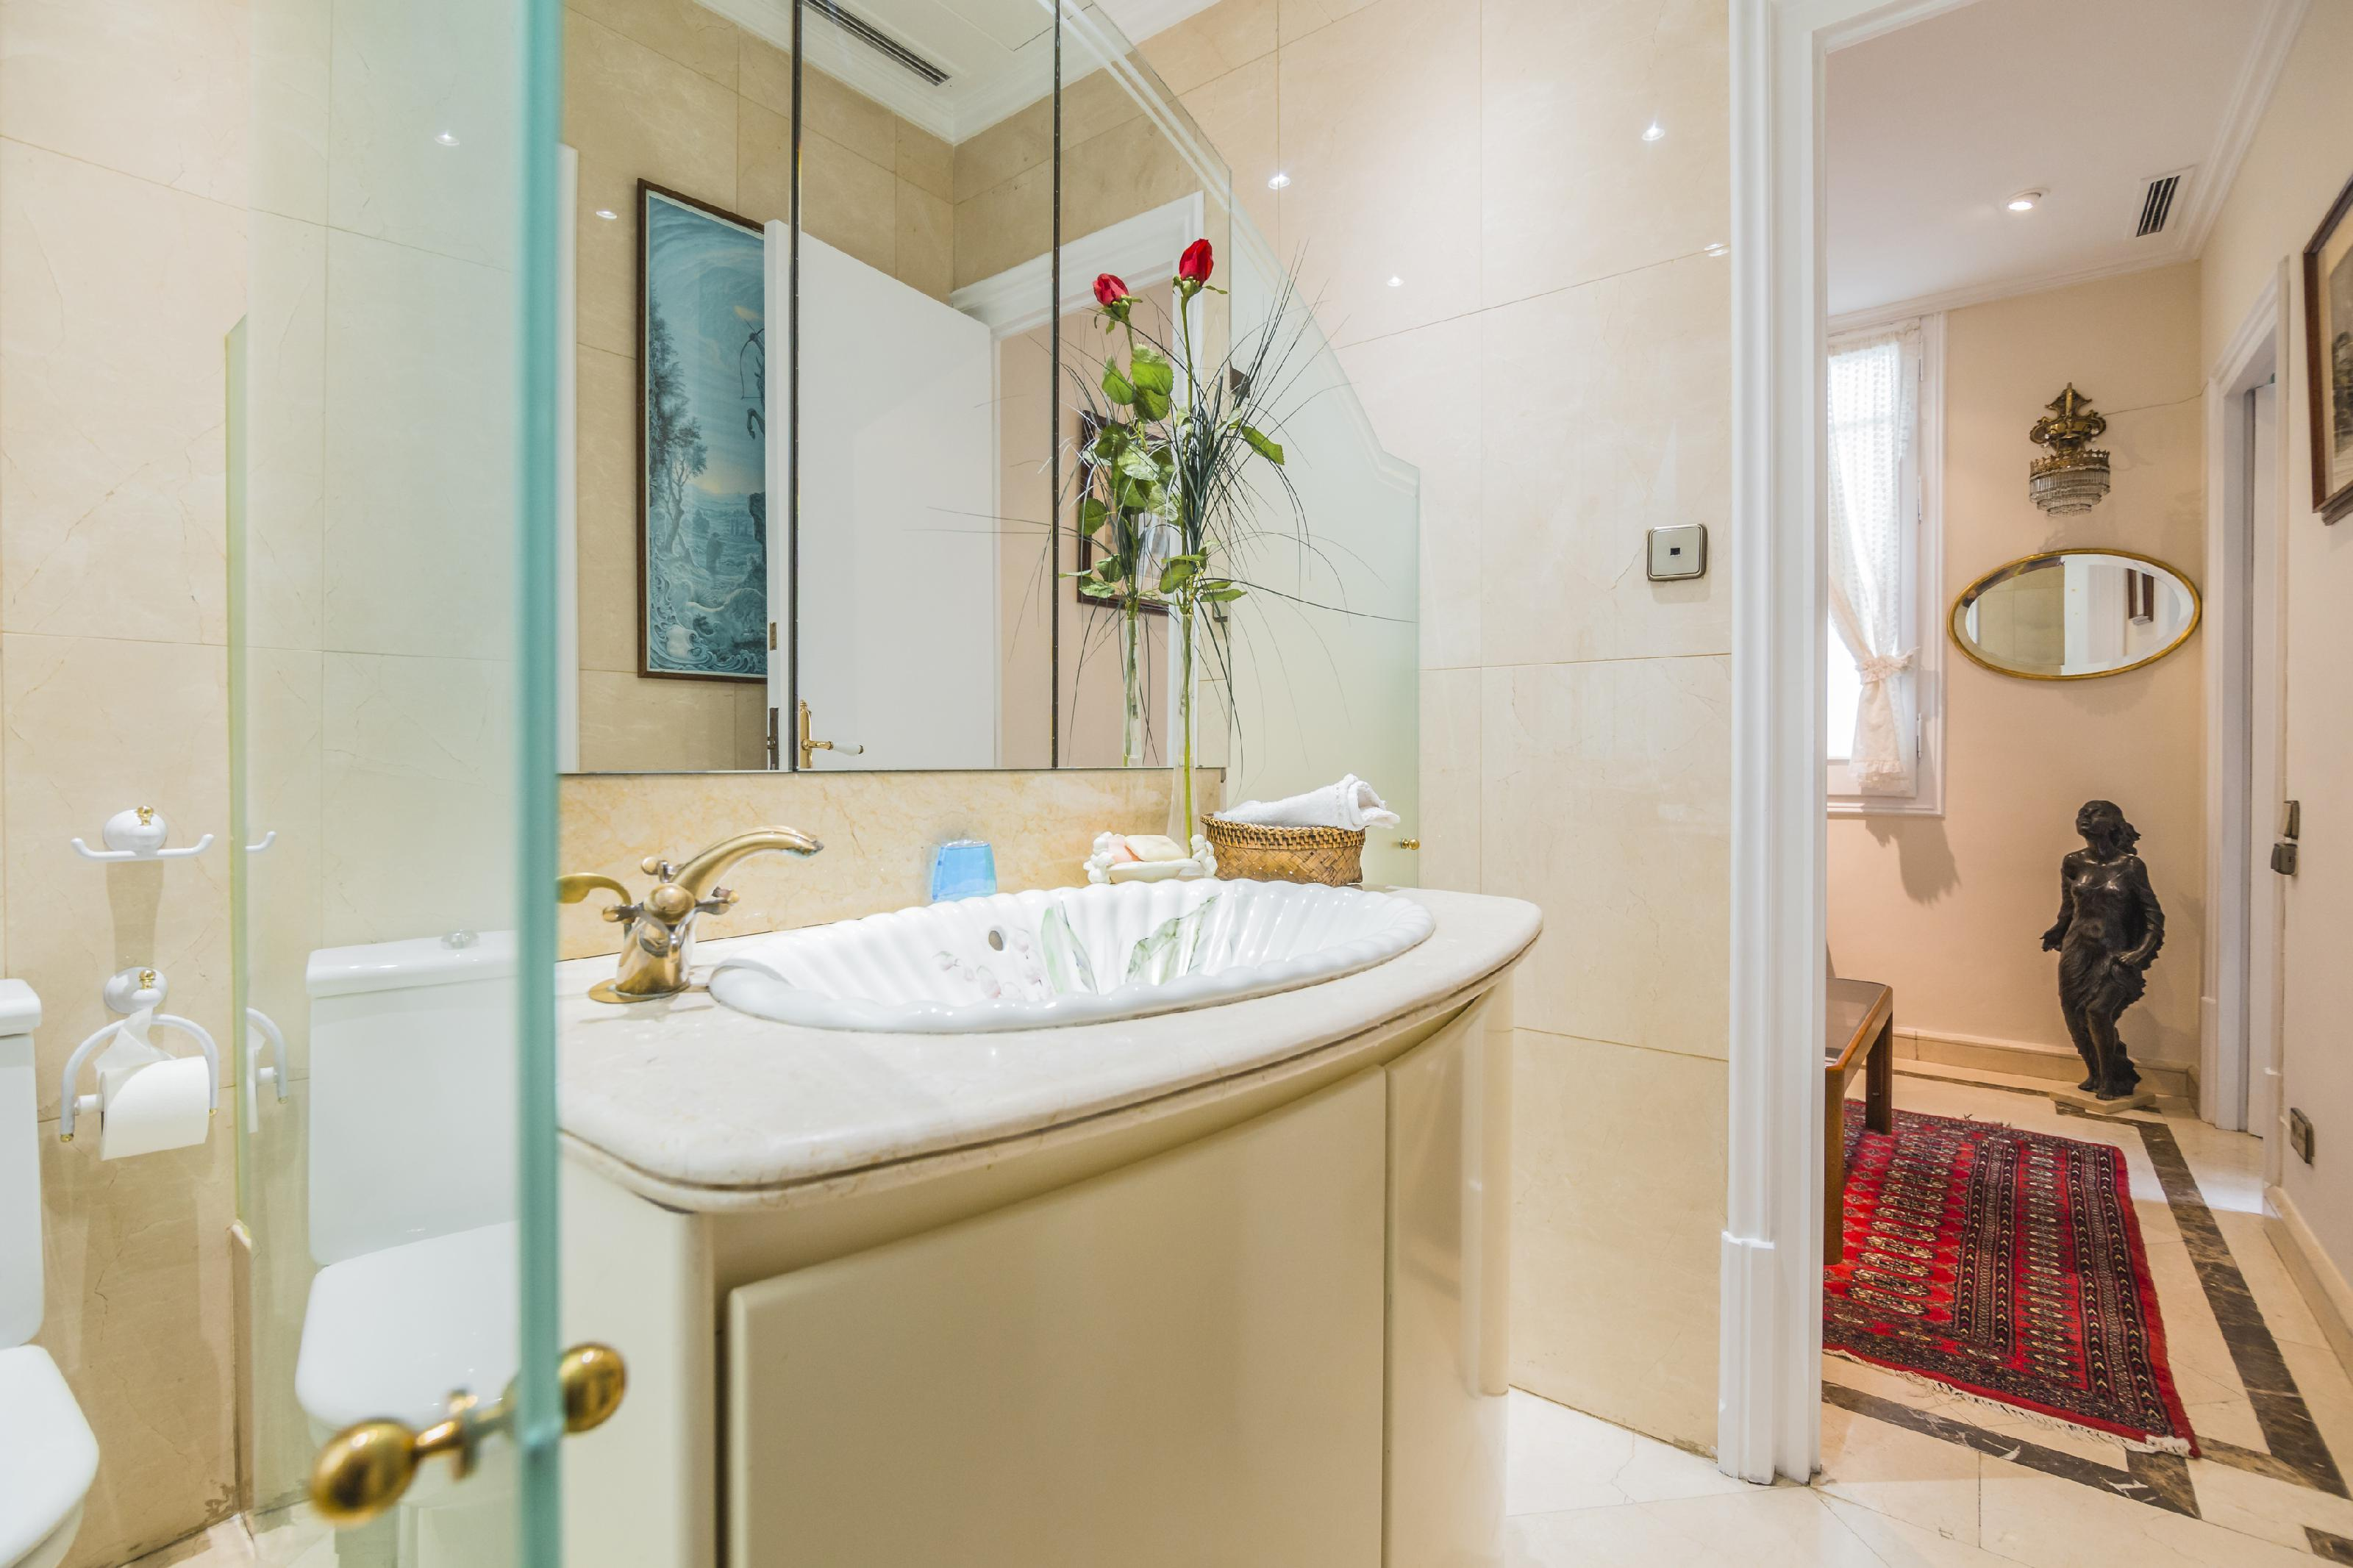 87800 Apartment for sale in Eixample, Dreta Eixample 16